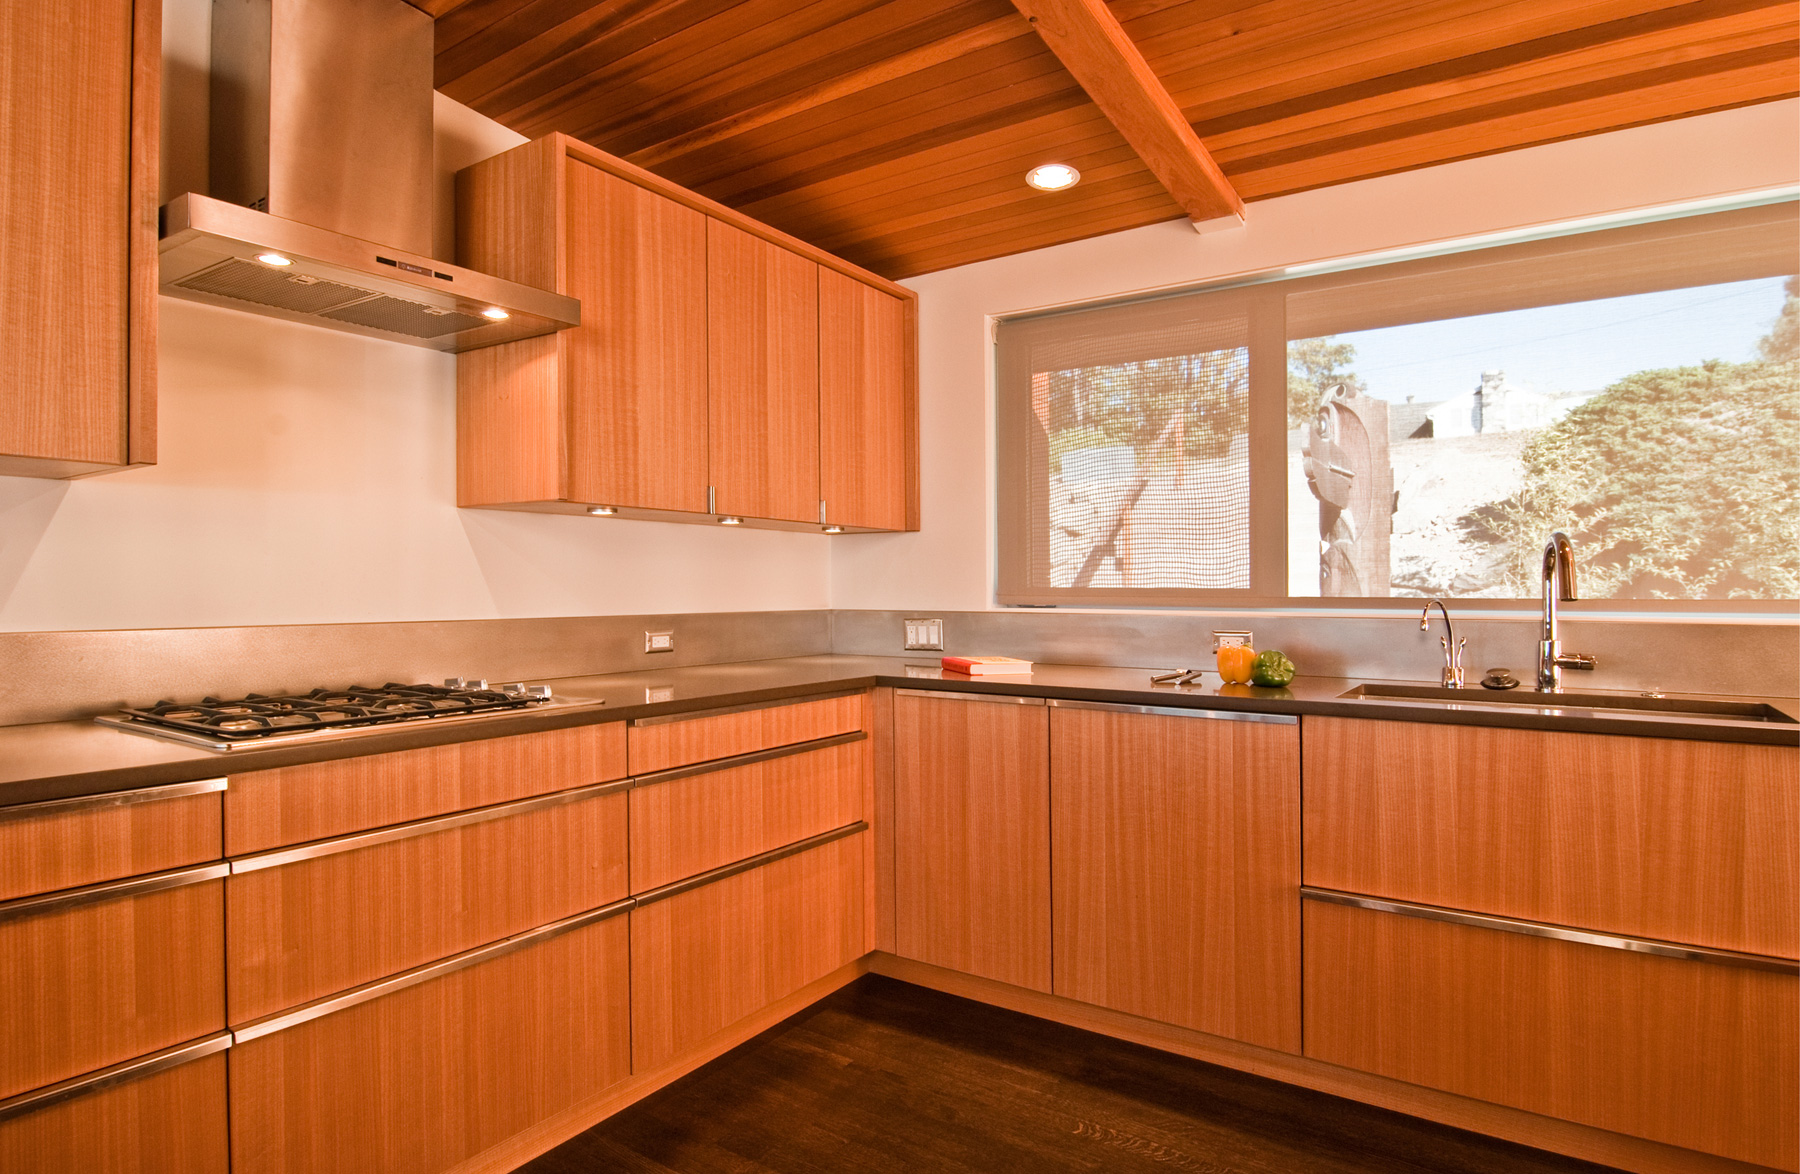 Mid century modern kitchen cabinets recommendation homesfeed for Pictures of kitchen cupboards